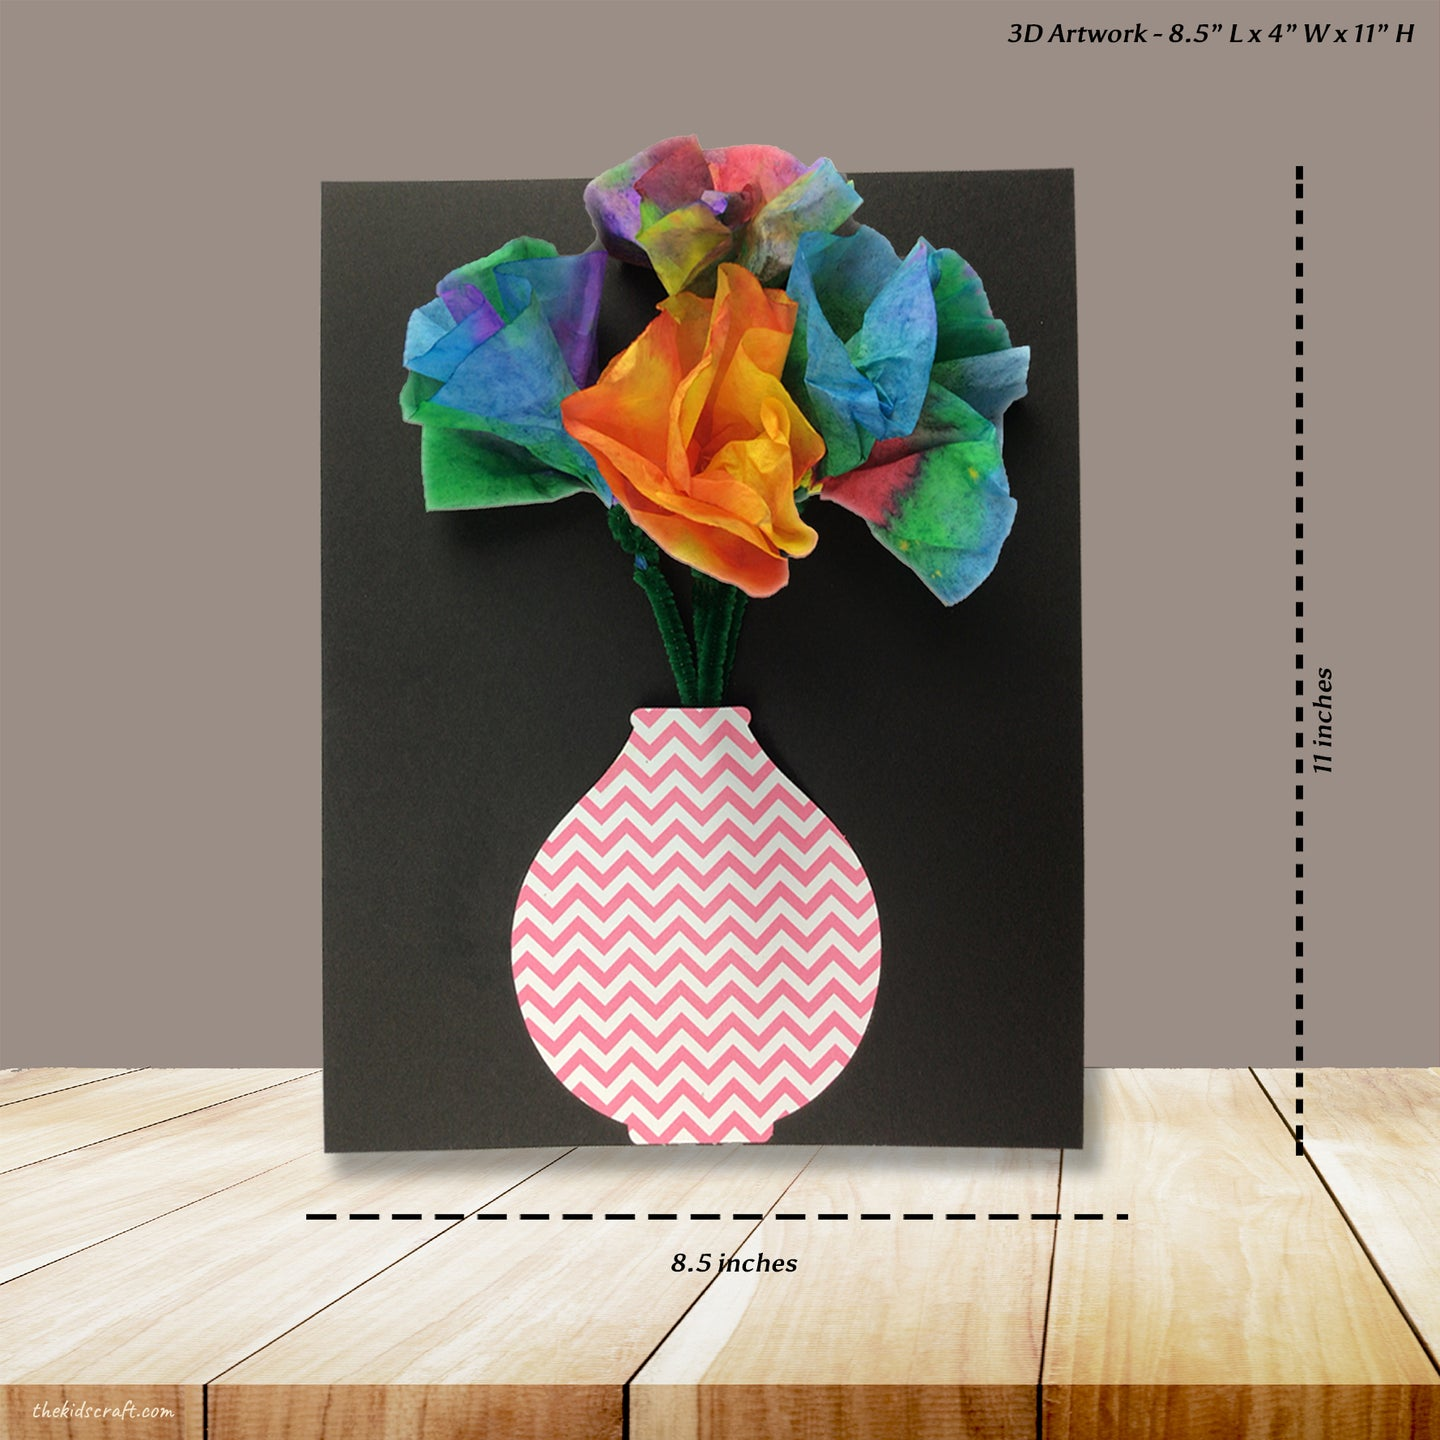 3D Artwork DIY Craft Kit (Pack of 1, 6 or 12 kits)